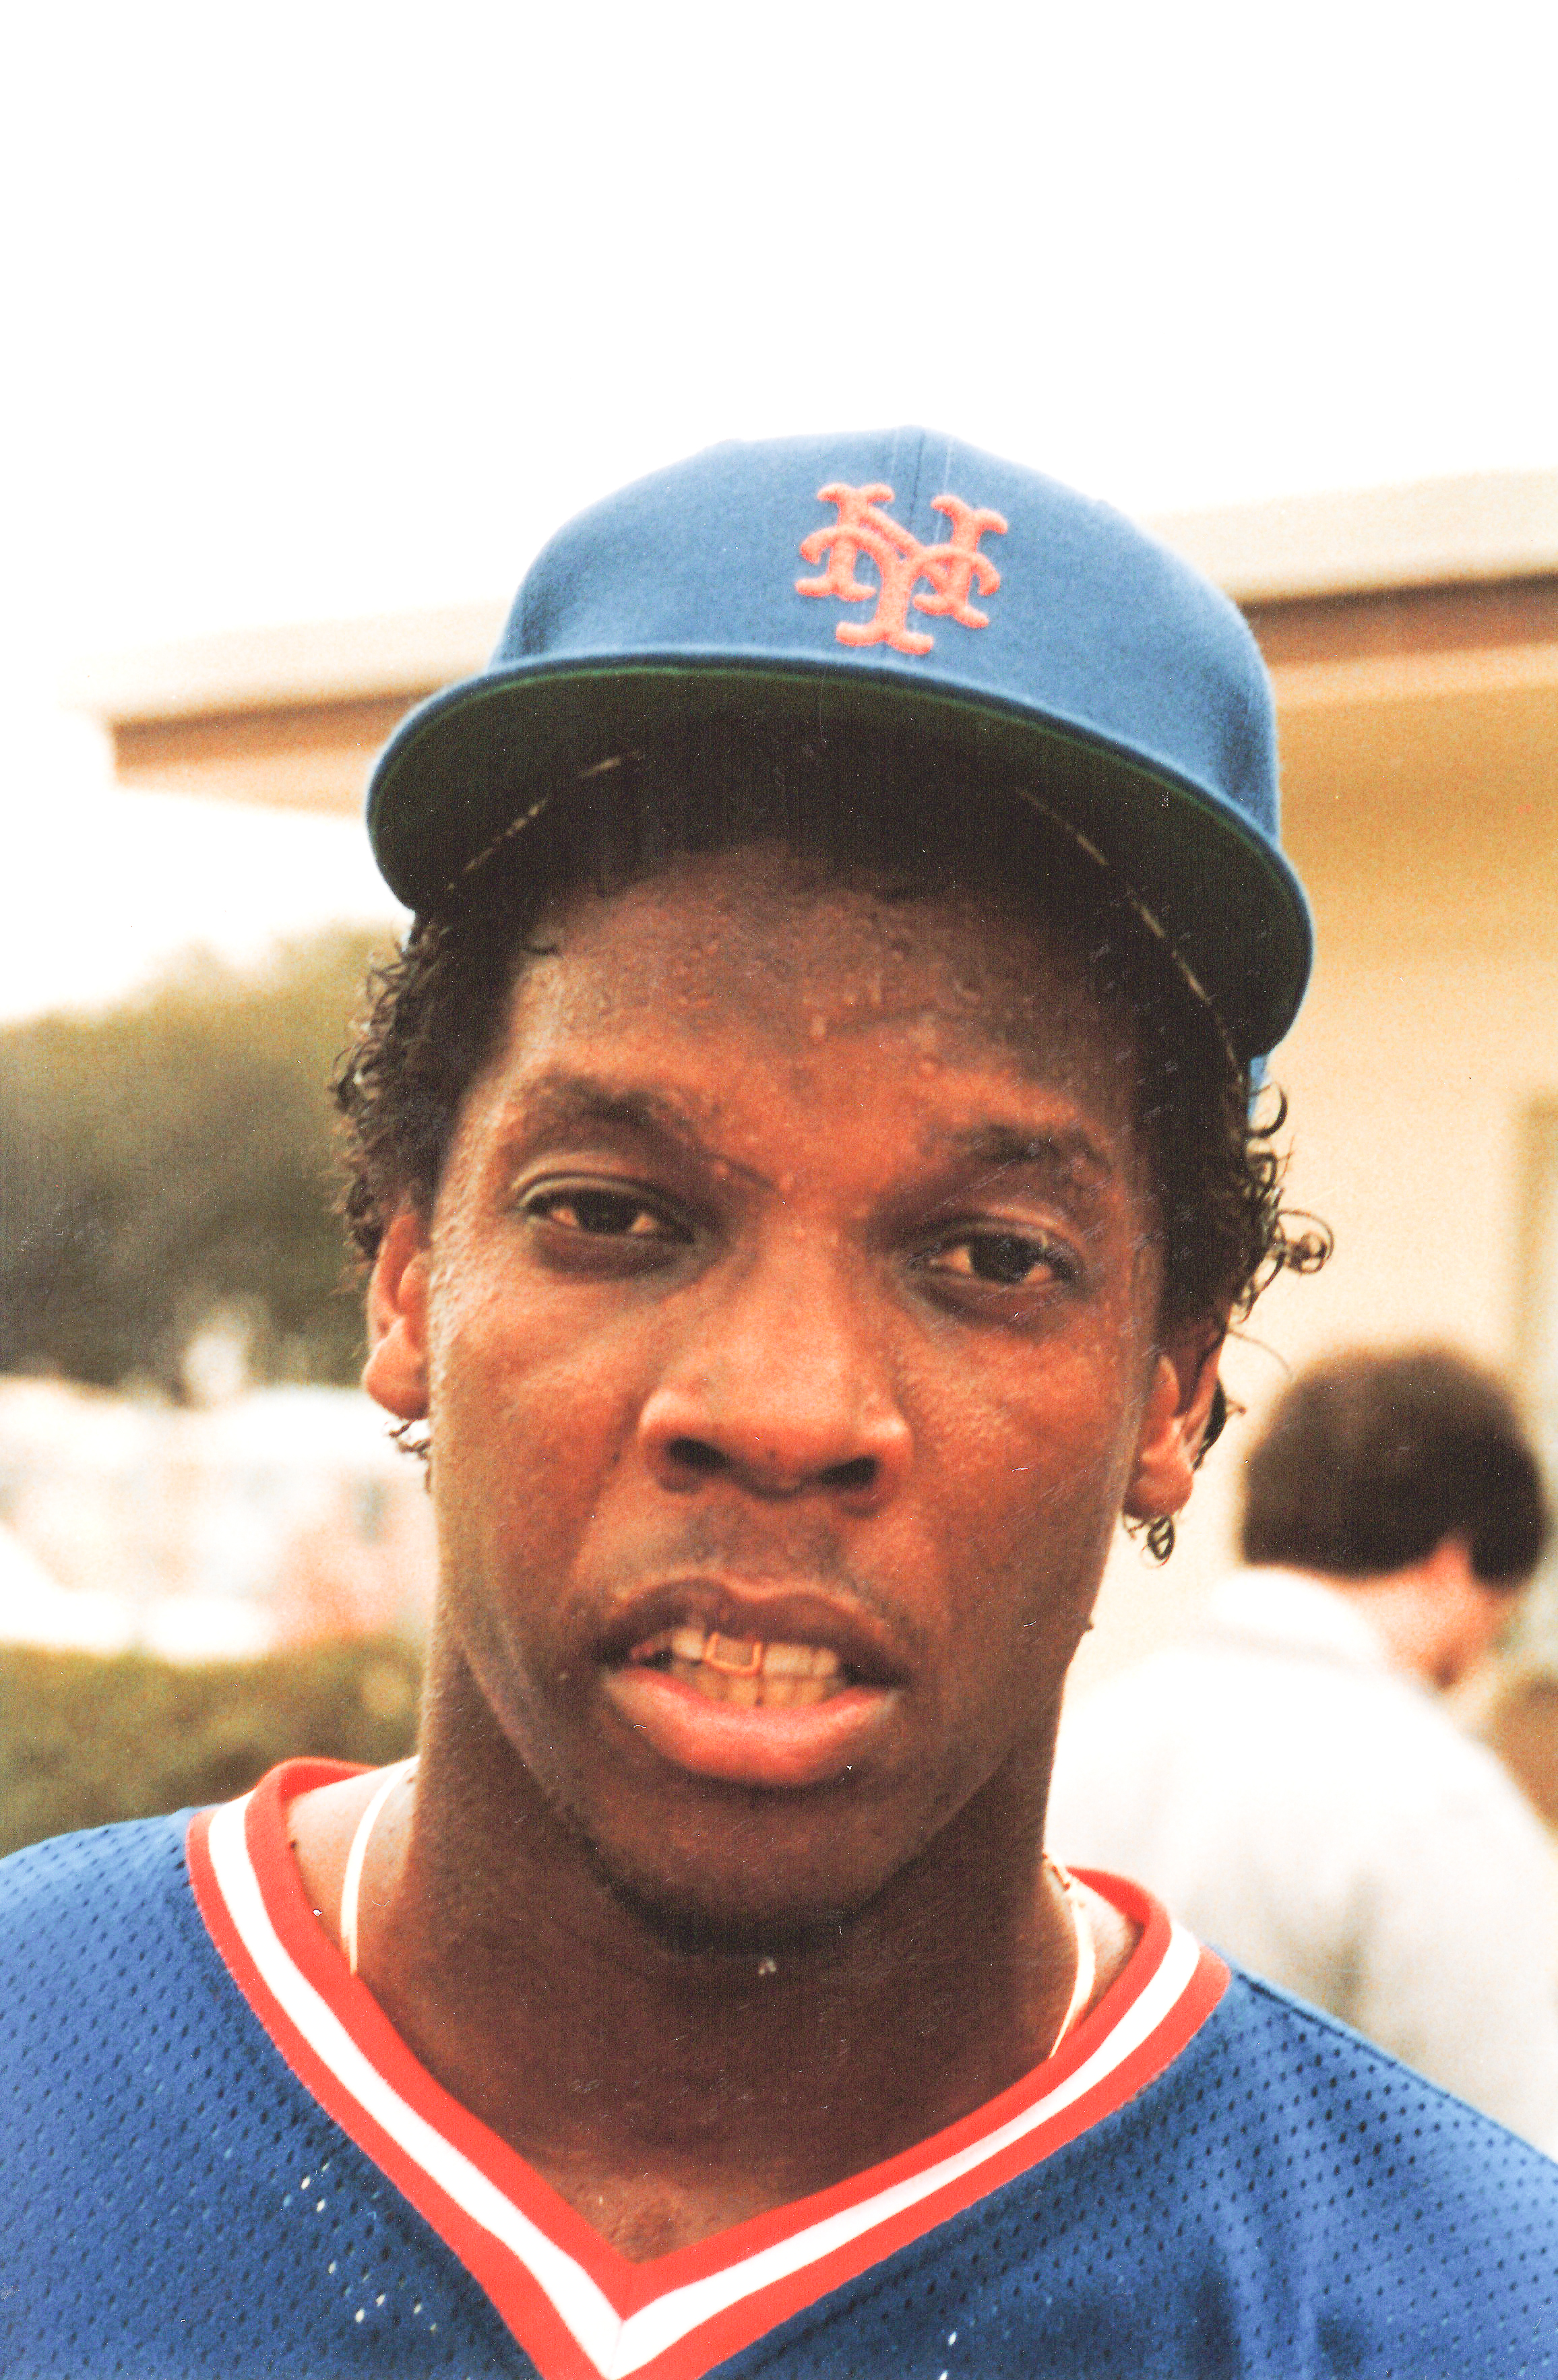 File:Dwight Gooden 1986.jpg - Wikimedia Commons